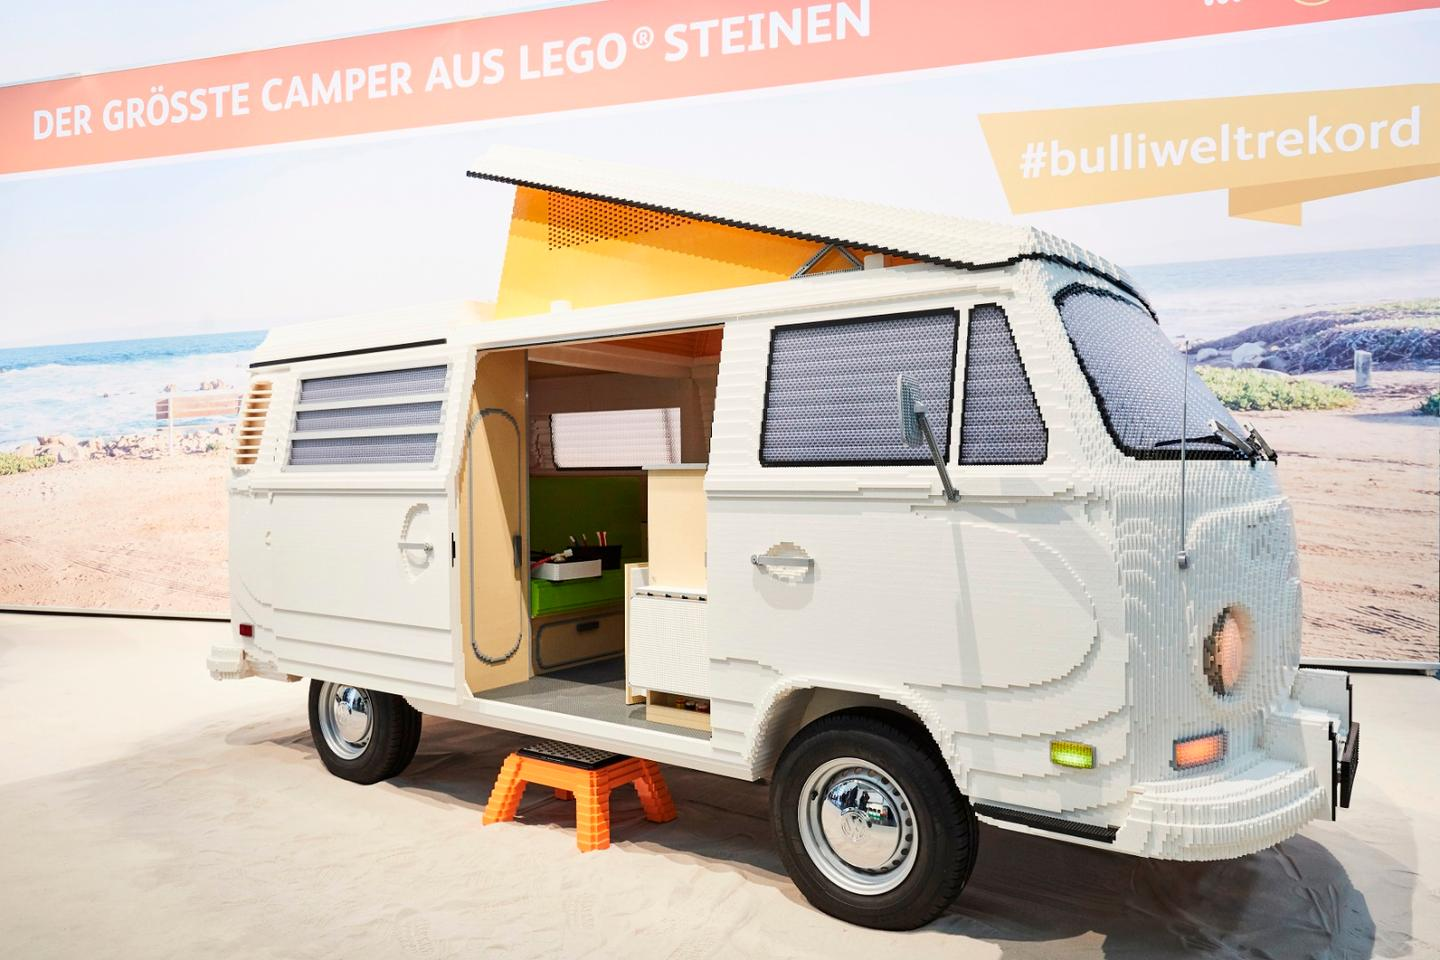 Two Lego builders spent six weeks building the van up ahead of its public debut this week